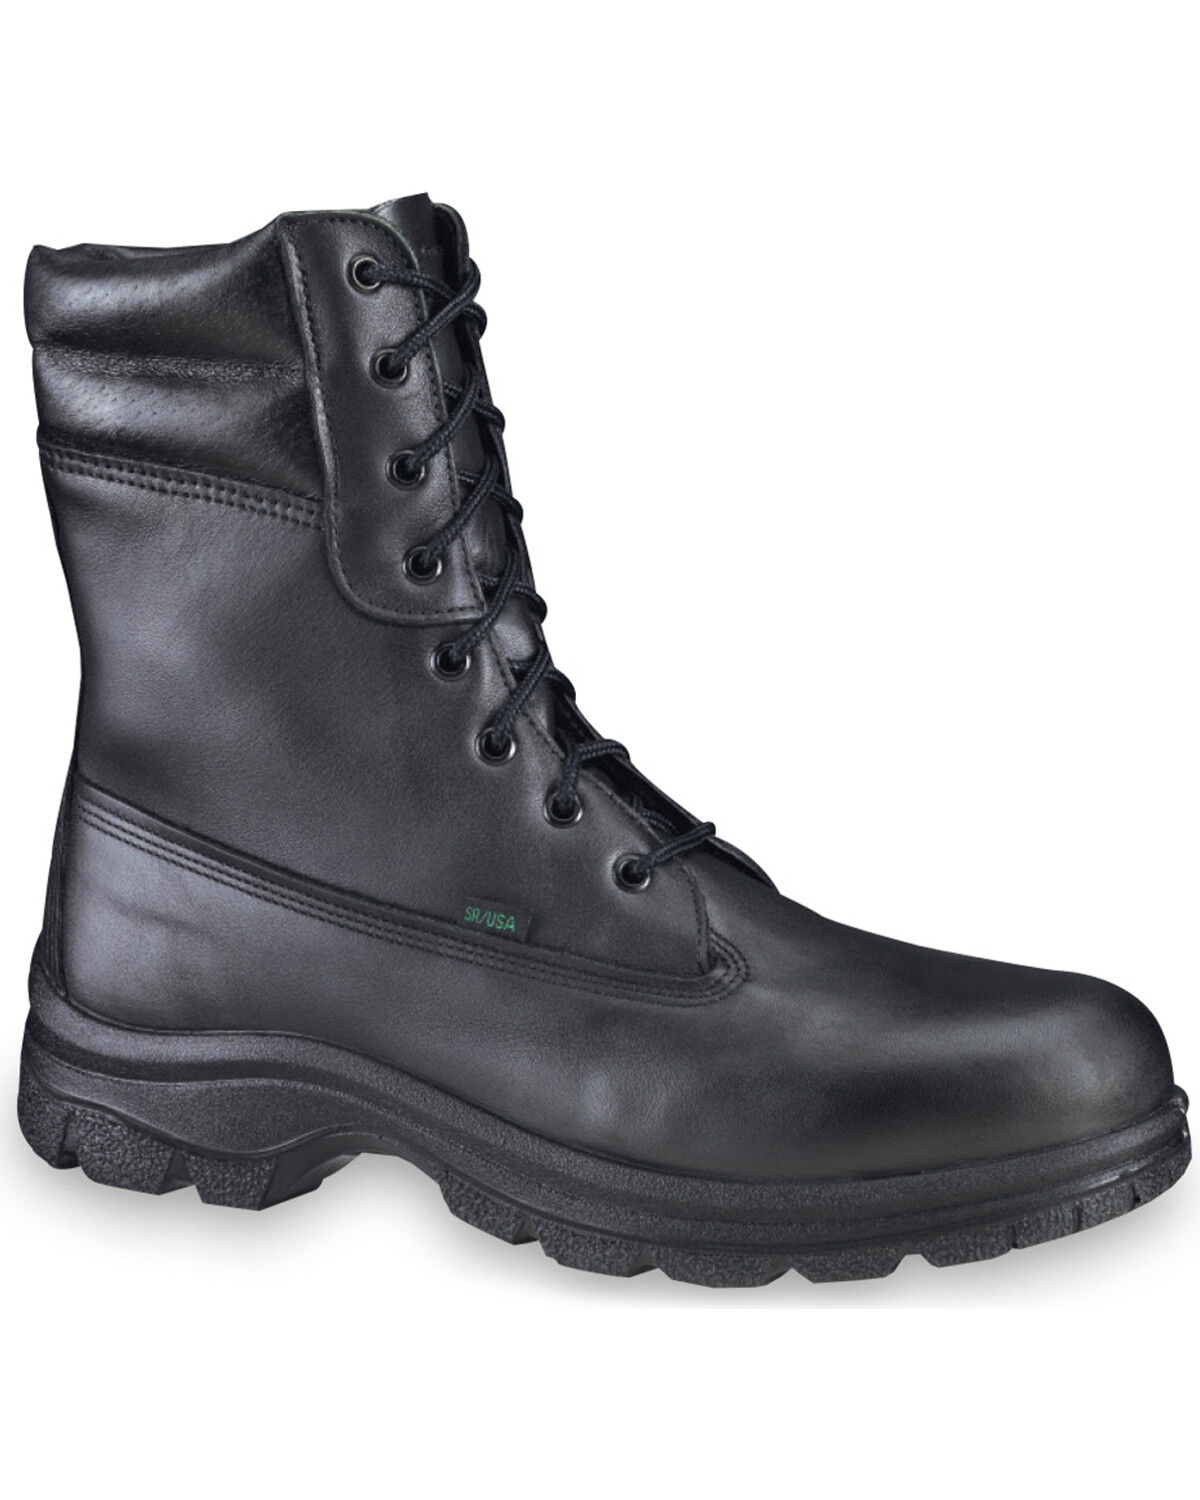 Service Industry Boots: Military